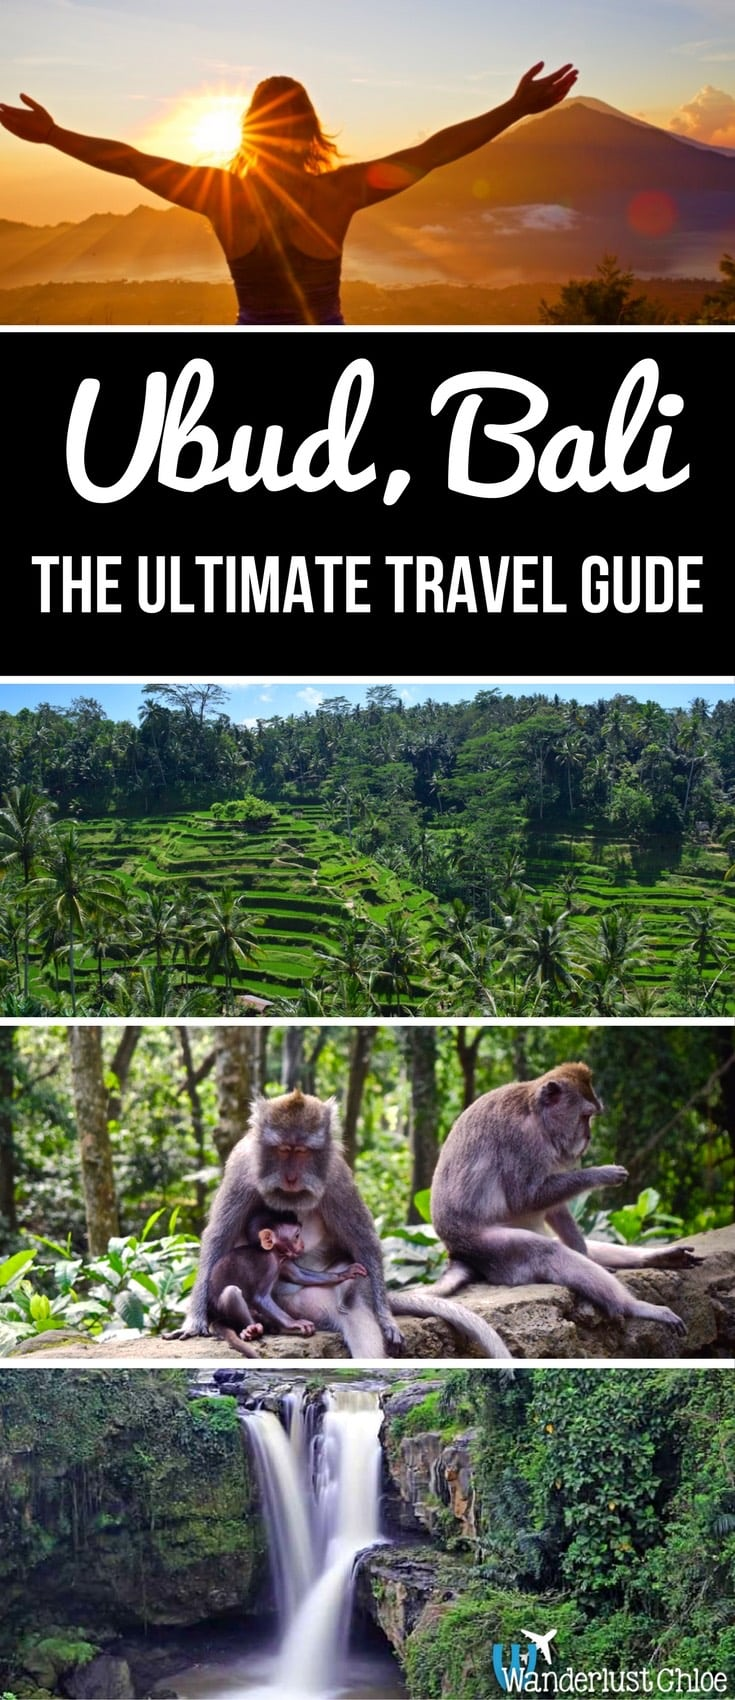 Ubud, Bali - The Ultimate Travel Guide